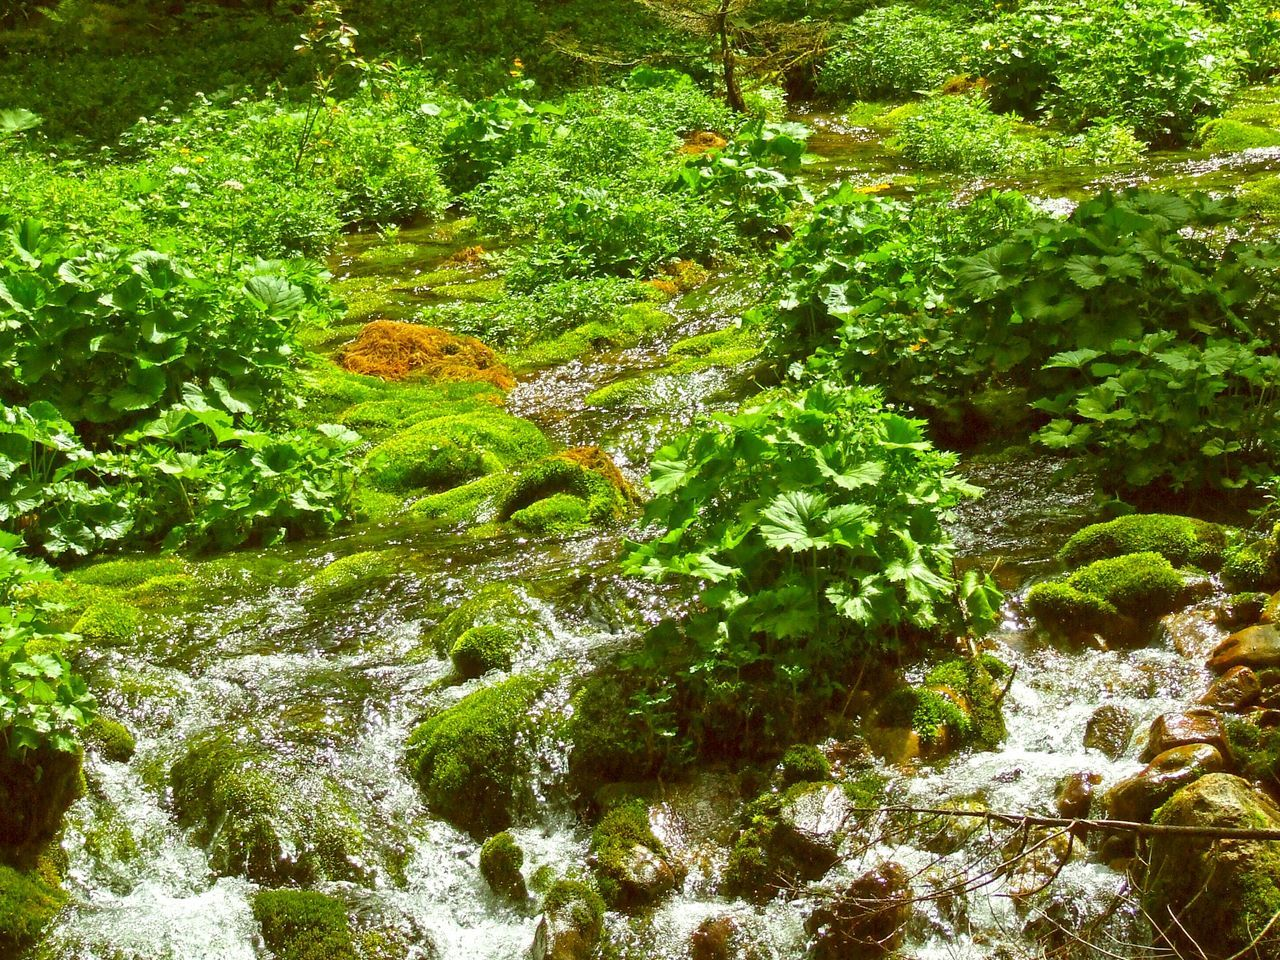 plant, nature, water, forest, beauty in nature, tranquility, lush foliage, green color, green, growth, tranquil scene, outdoors, no people, tree, day, waterfall